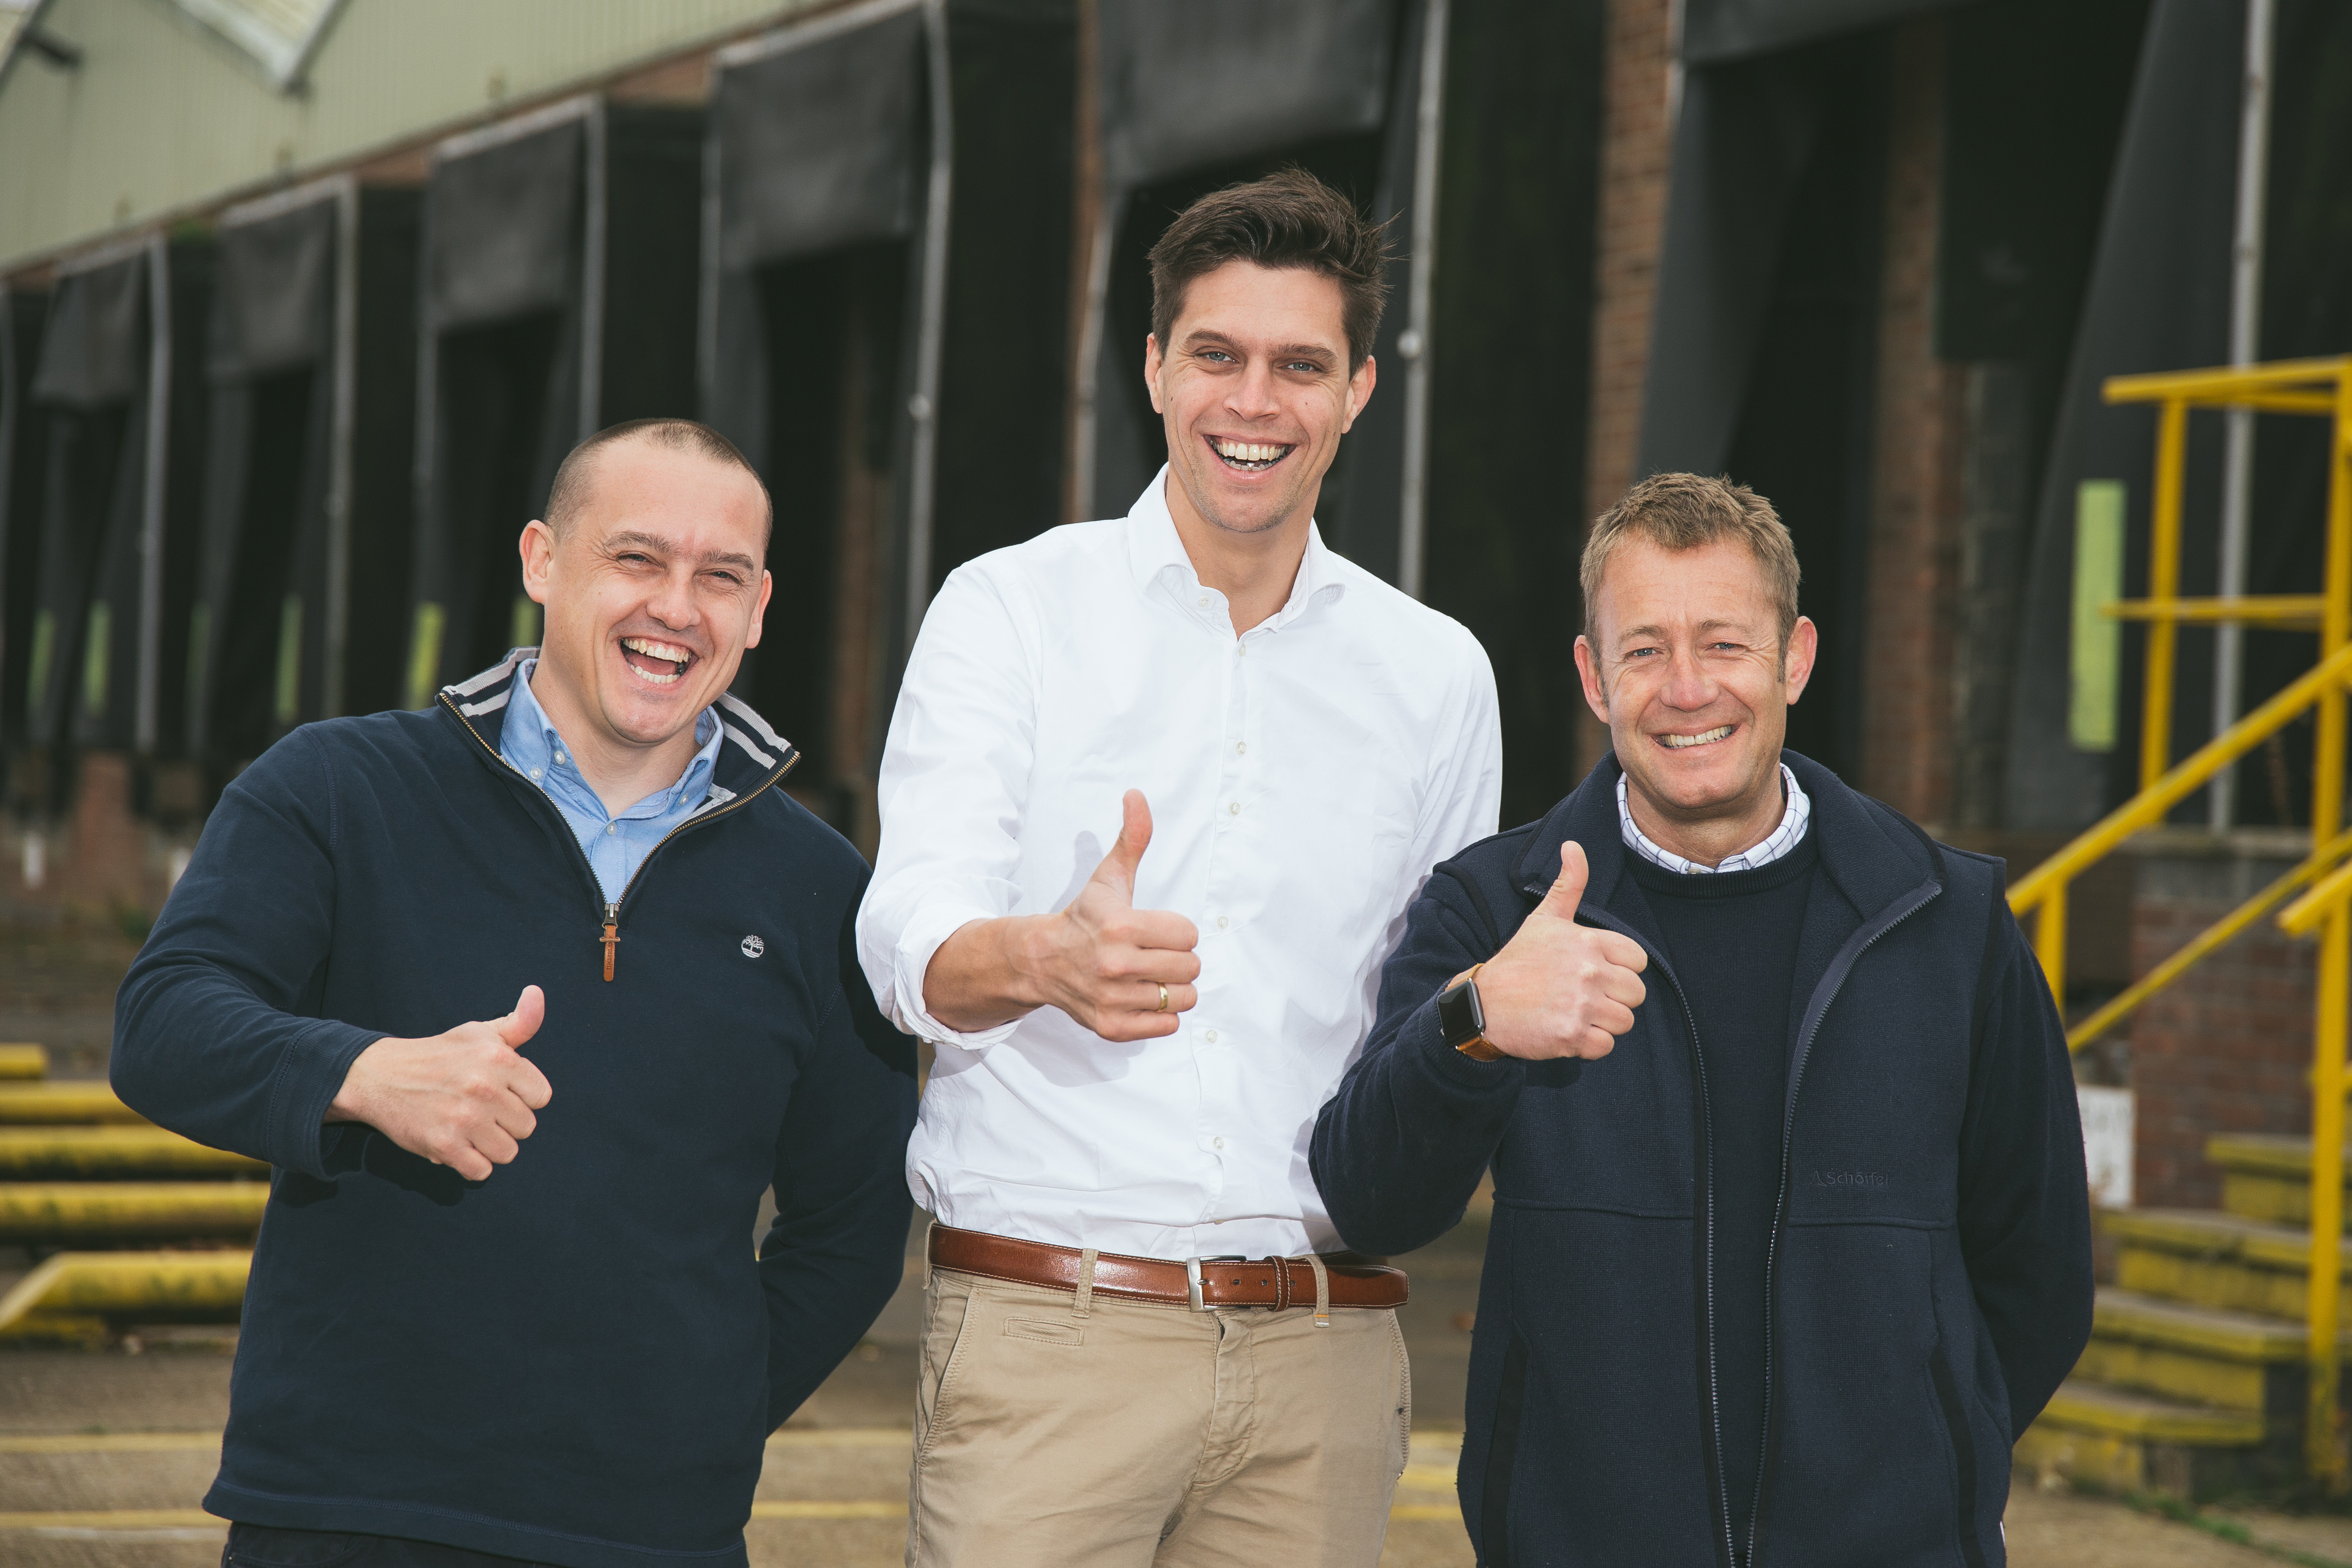 Left to Right- John Mawer owner Annyalla Chicks UK, Michiel van Veldhuisen international sales manager HatchTech and Jonathan Martin operations director Annyalla Chicks. Photo: Hatchtech